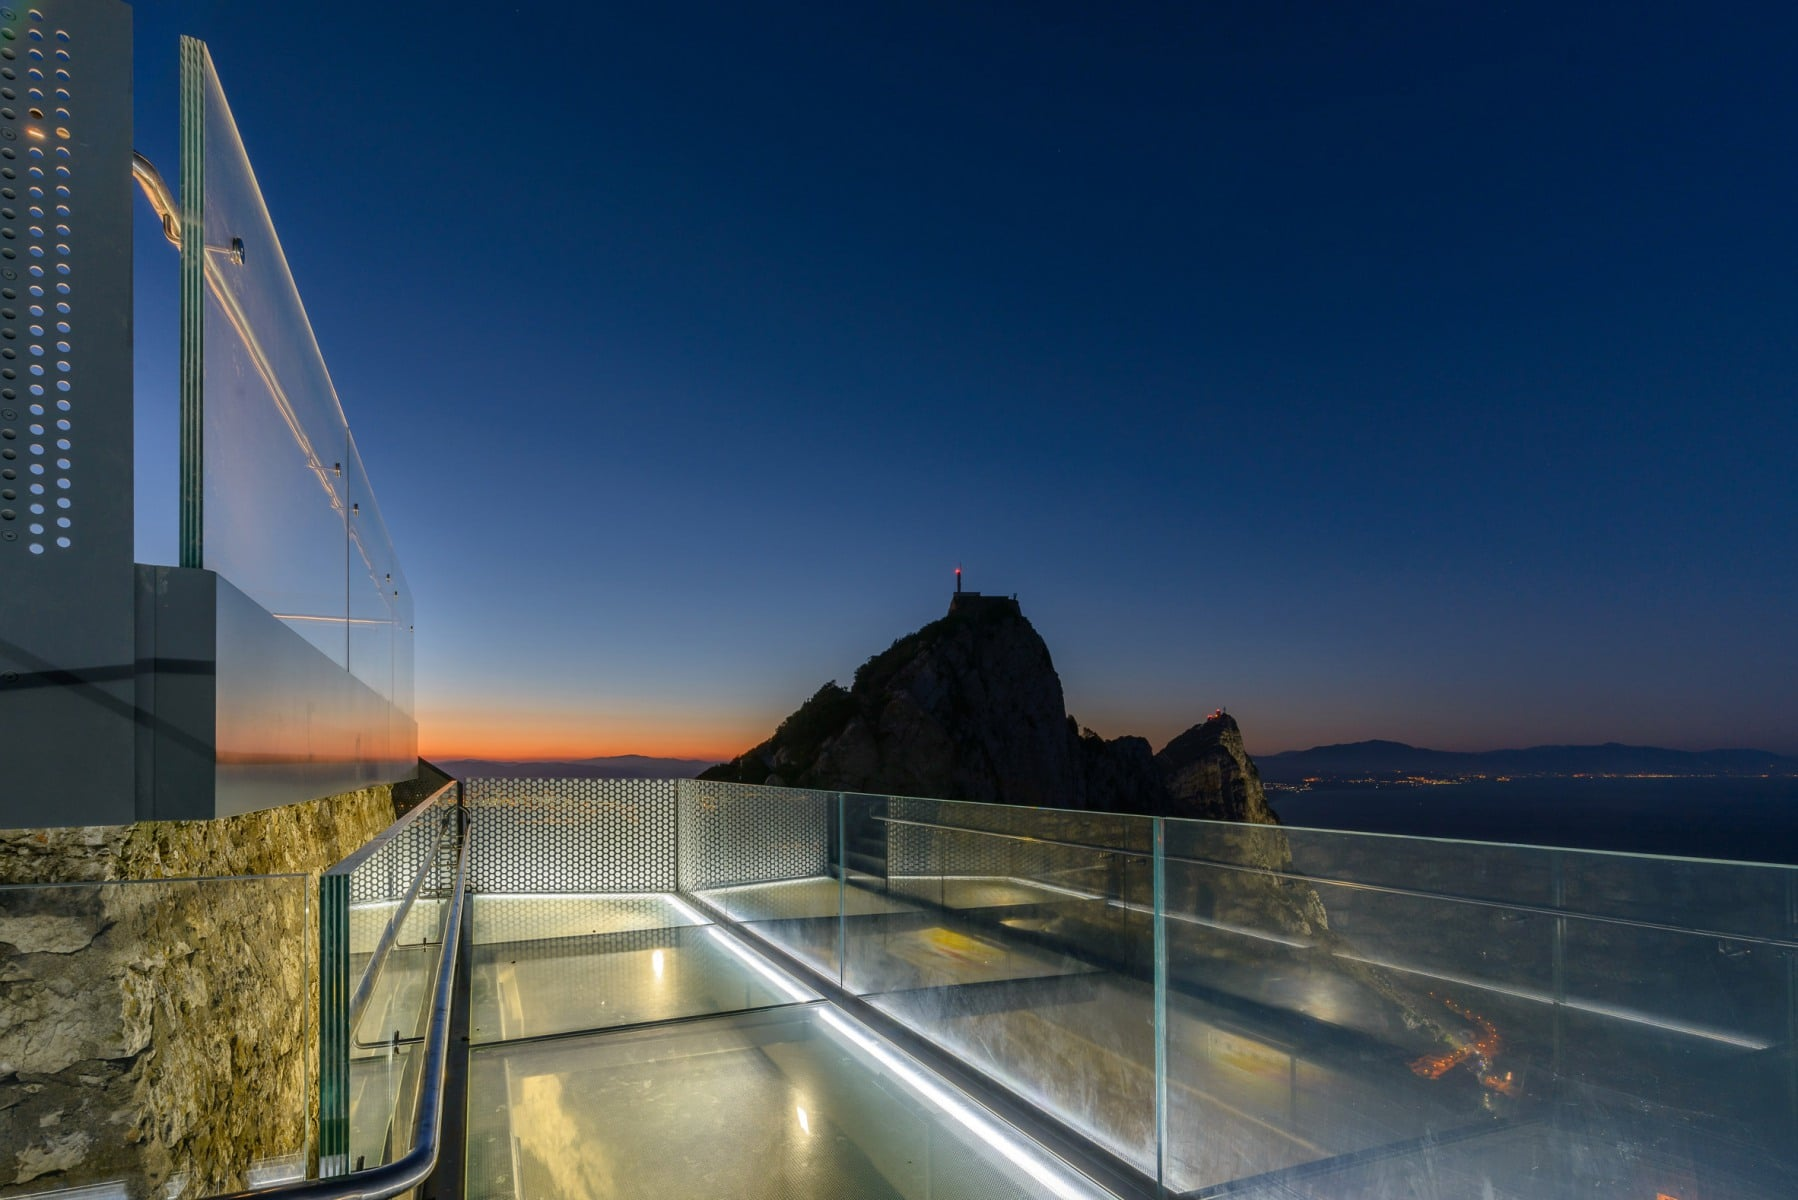 skywalk-gibraltar-17-photo-taken-for-bovis-koala-jv-by-meteogibs-photographer-stephen-ball_41367549530_o